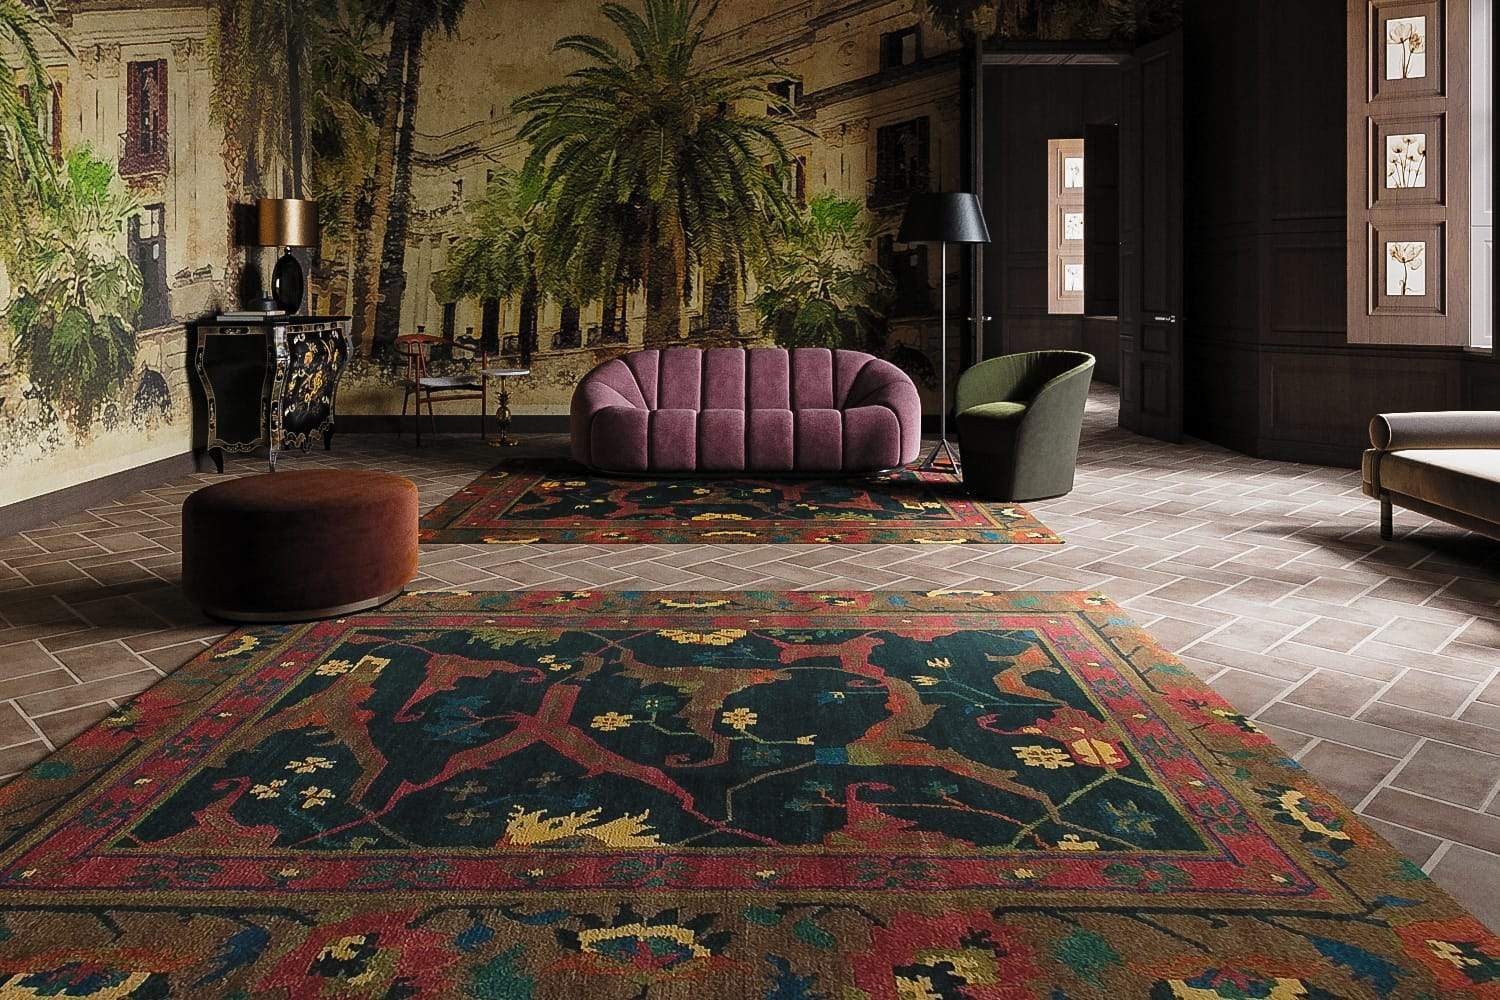 Installation image of Bidjar Spruce, a hand knotted rug designed by Tufenkian room-image